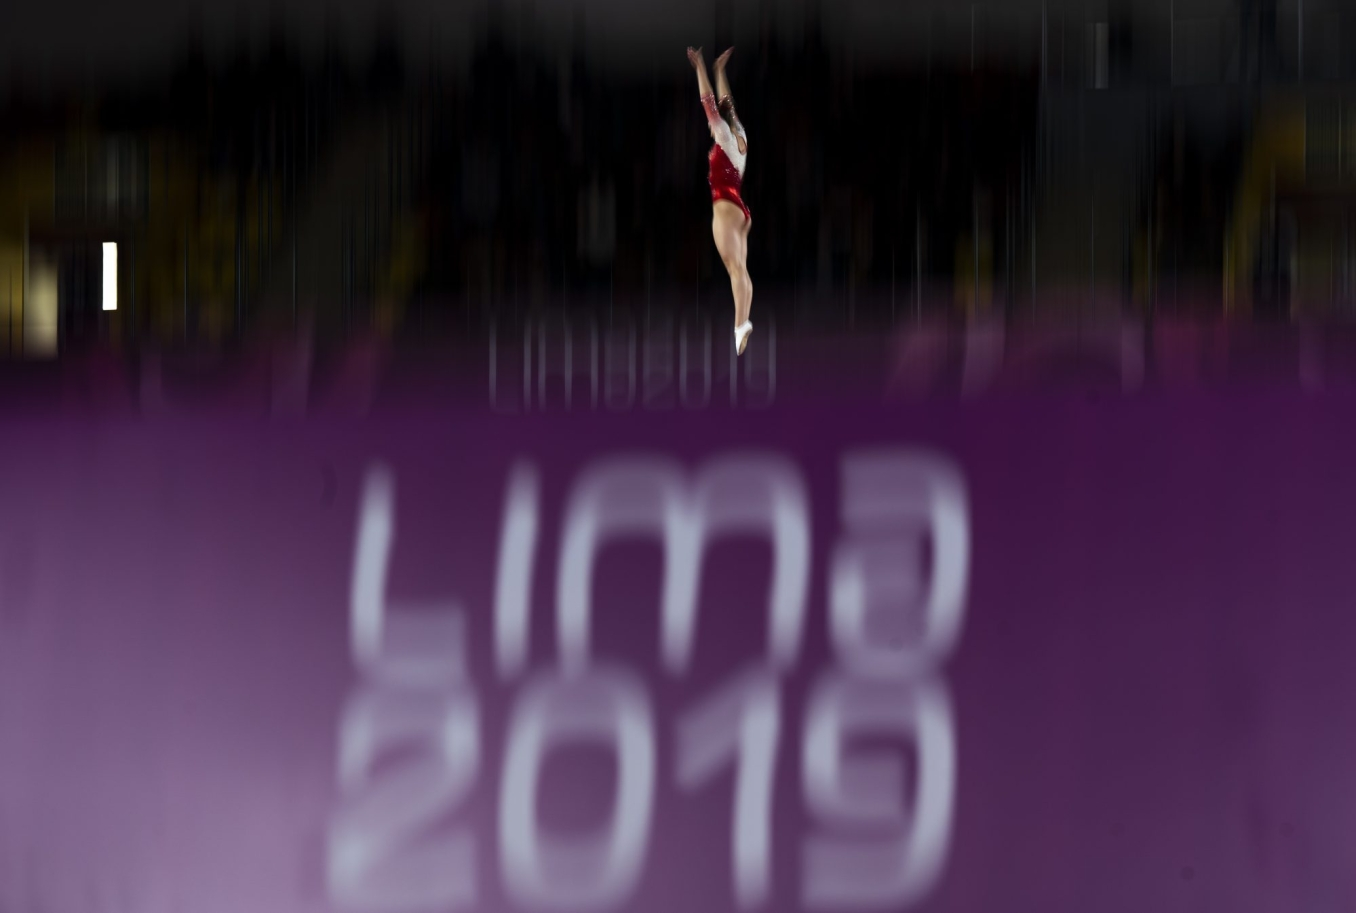 athlete in the air above a lima 2019 sign